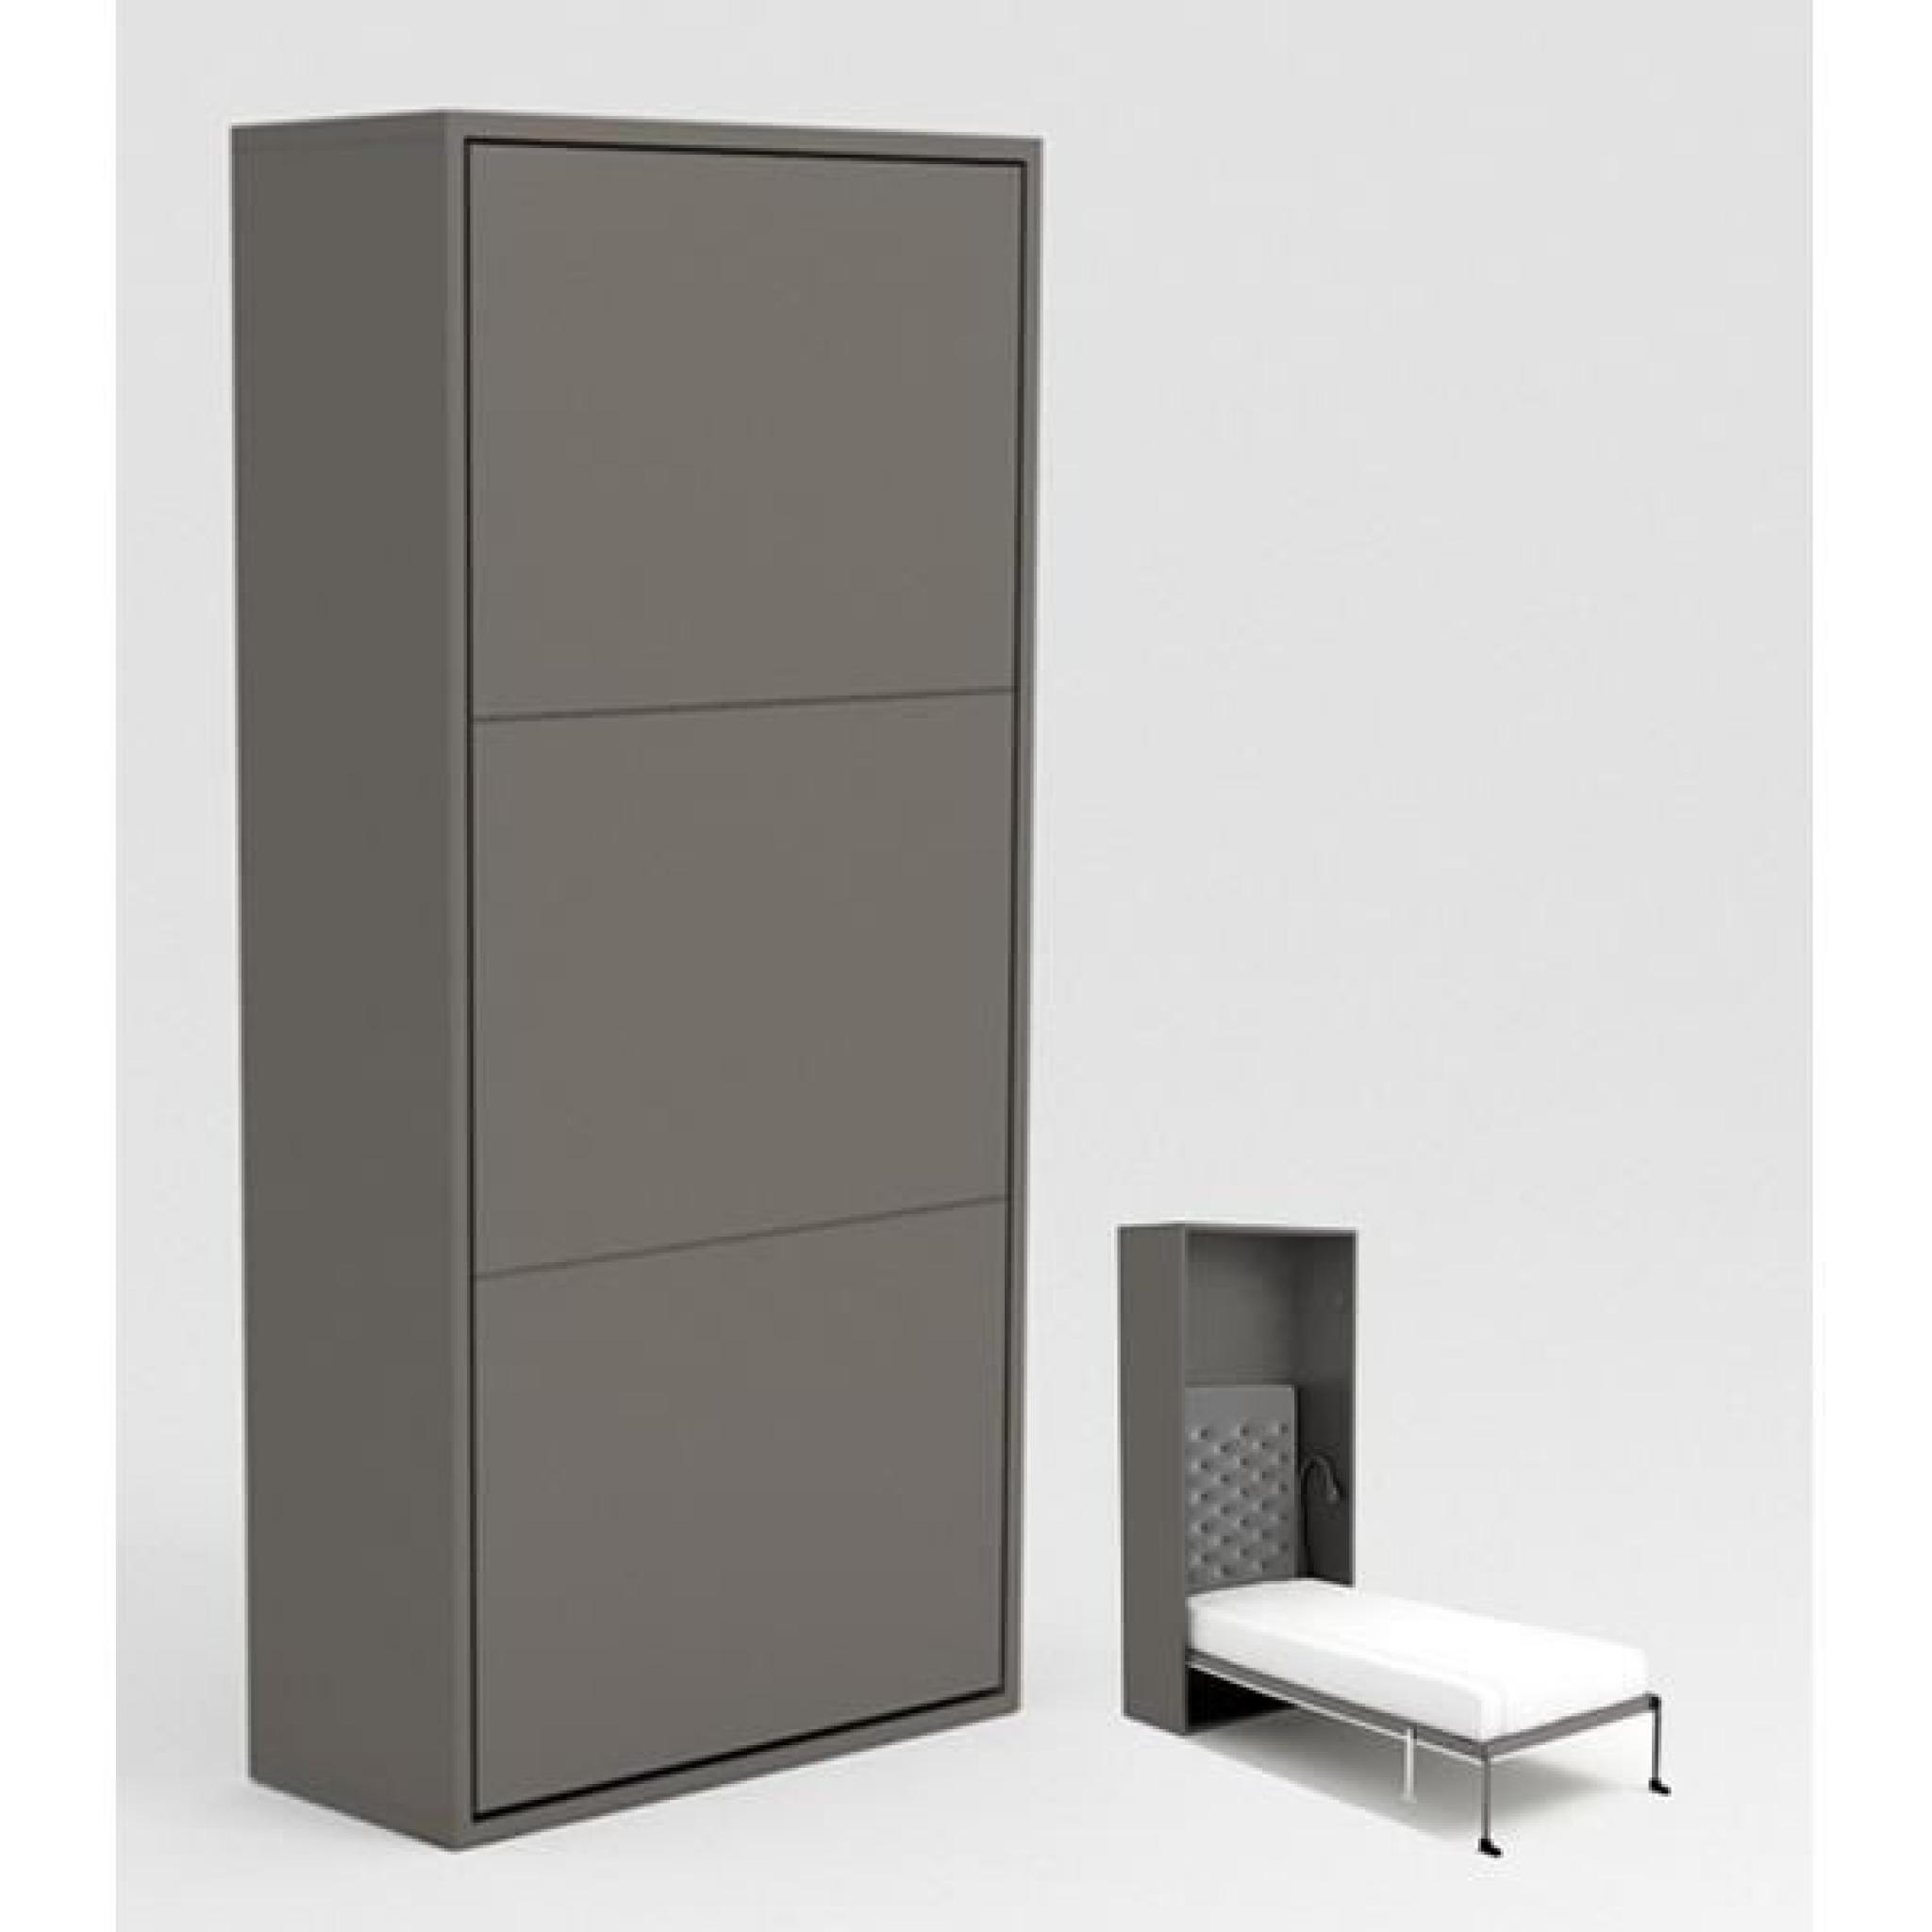 acheter armoire pas cher maison design. Black Bedroom Furniture Sets. Home Design Ideas